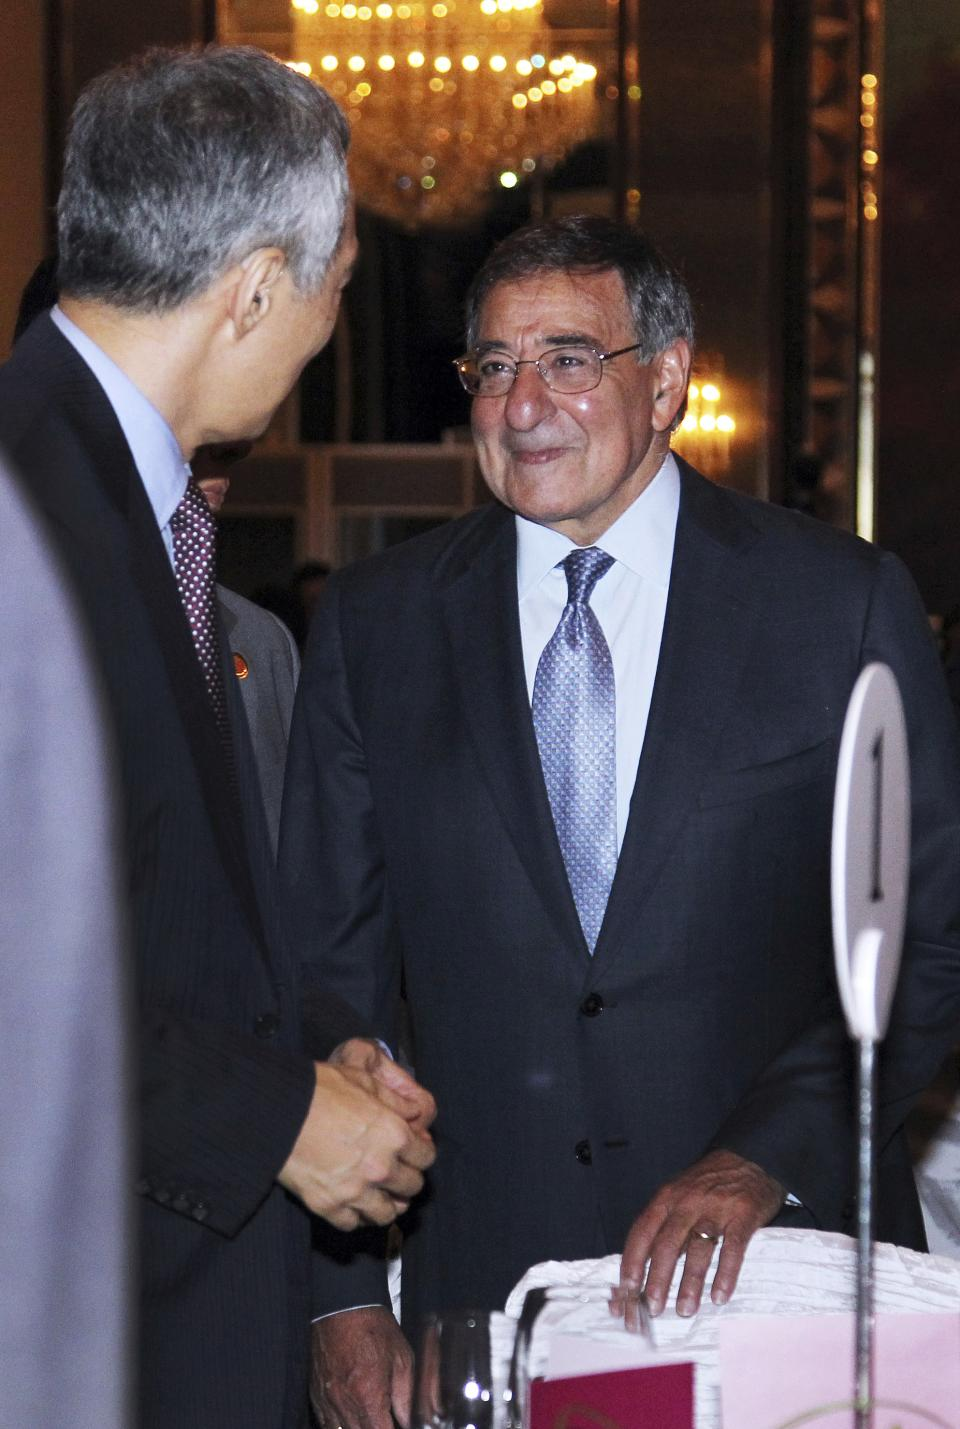 U.S. Defense Secretary Leon Panetta, right, speaks to Singapore's Prime Minister Lee Hsien Loong, left, at the opening session of the IISS Shangri-la Security Summit in Singapore on Friday June 1, 2012. (AP Photo/Wong Maye-E)